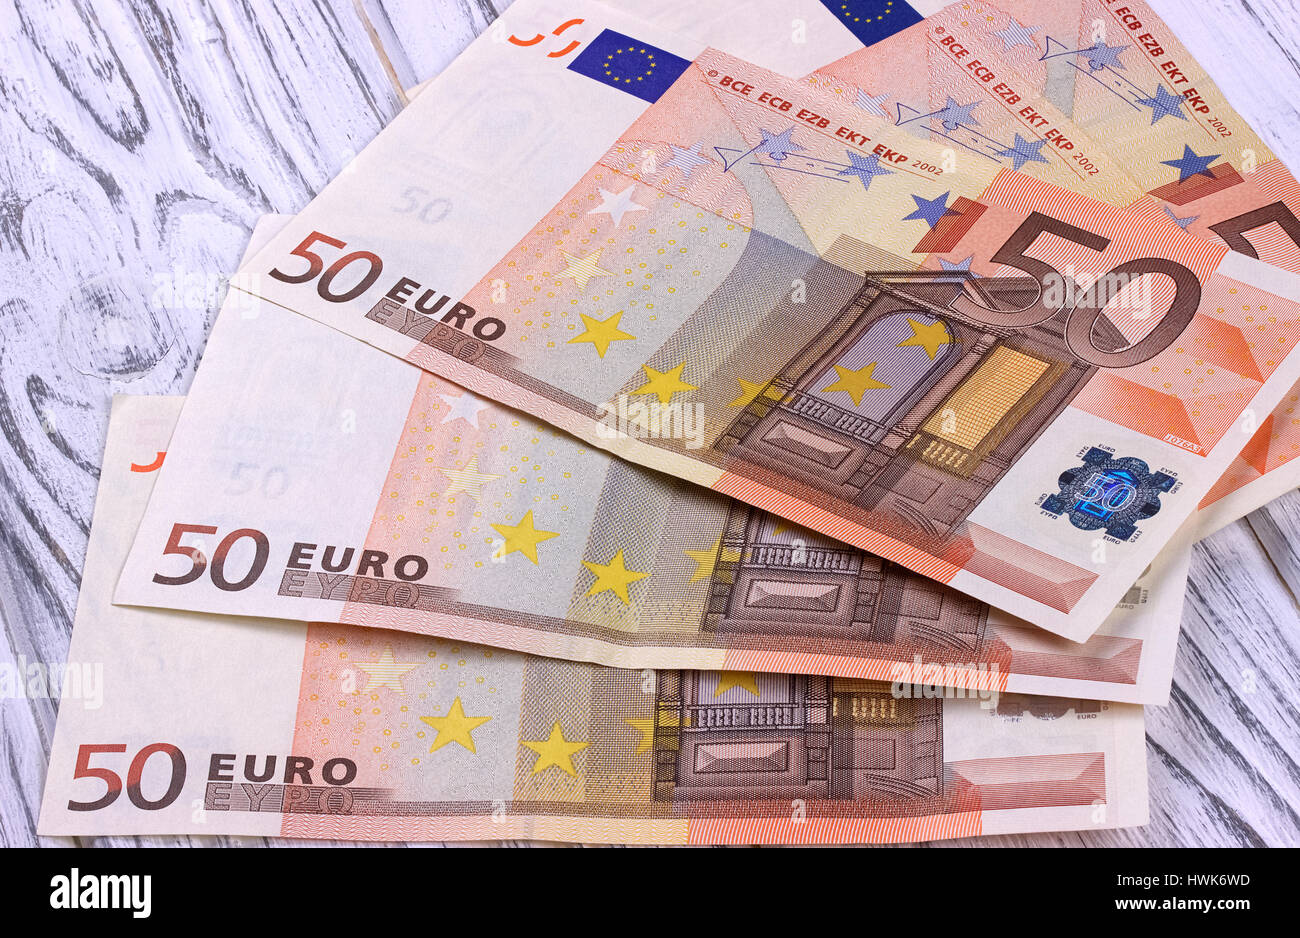 Fifty euro banknotes on white wooden background. - Stock Image